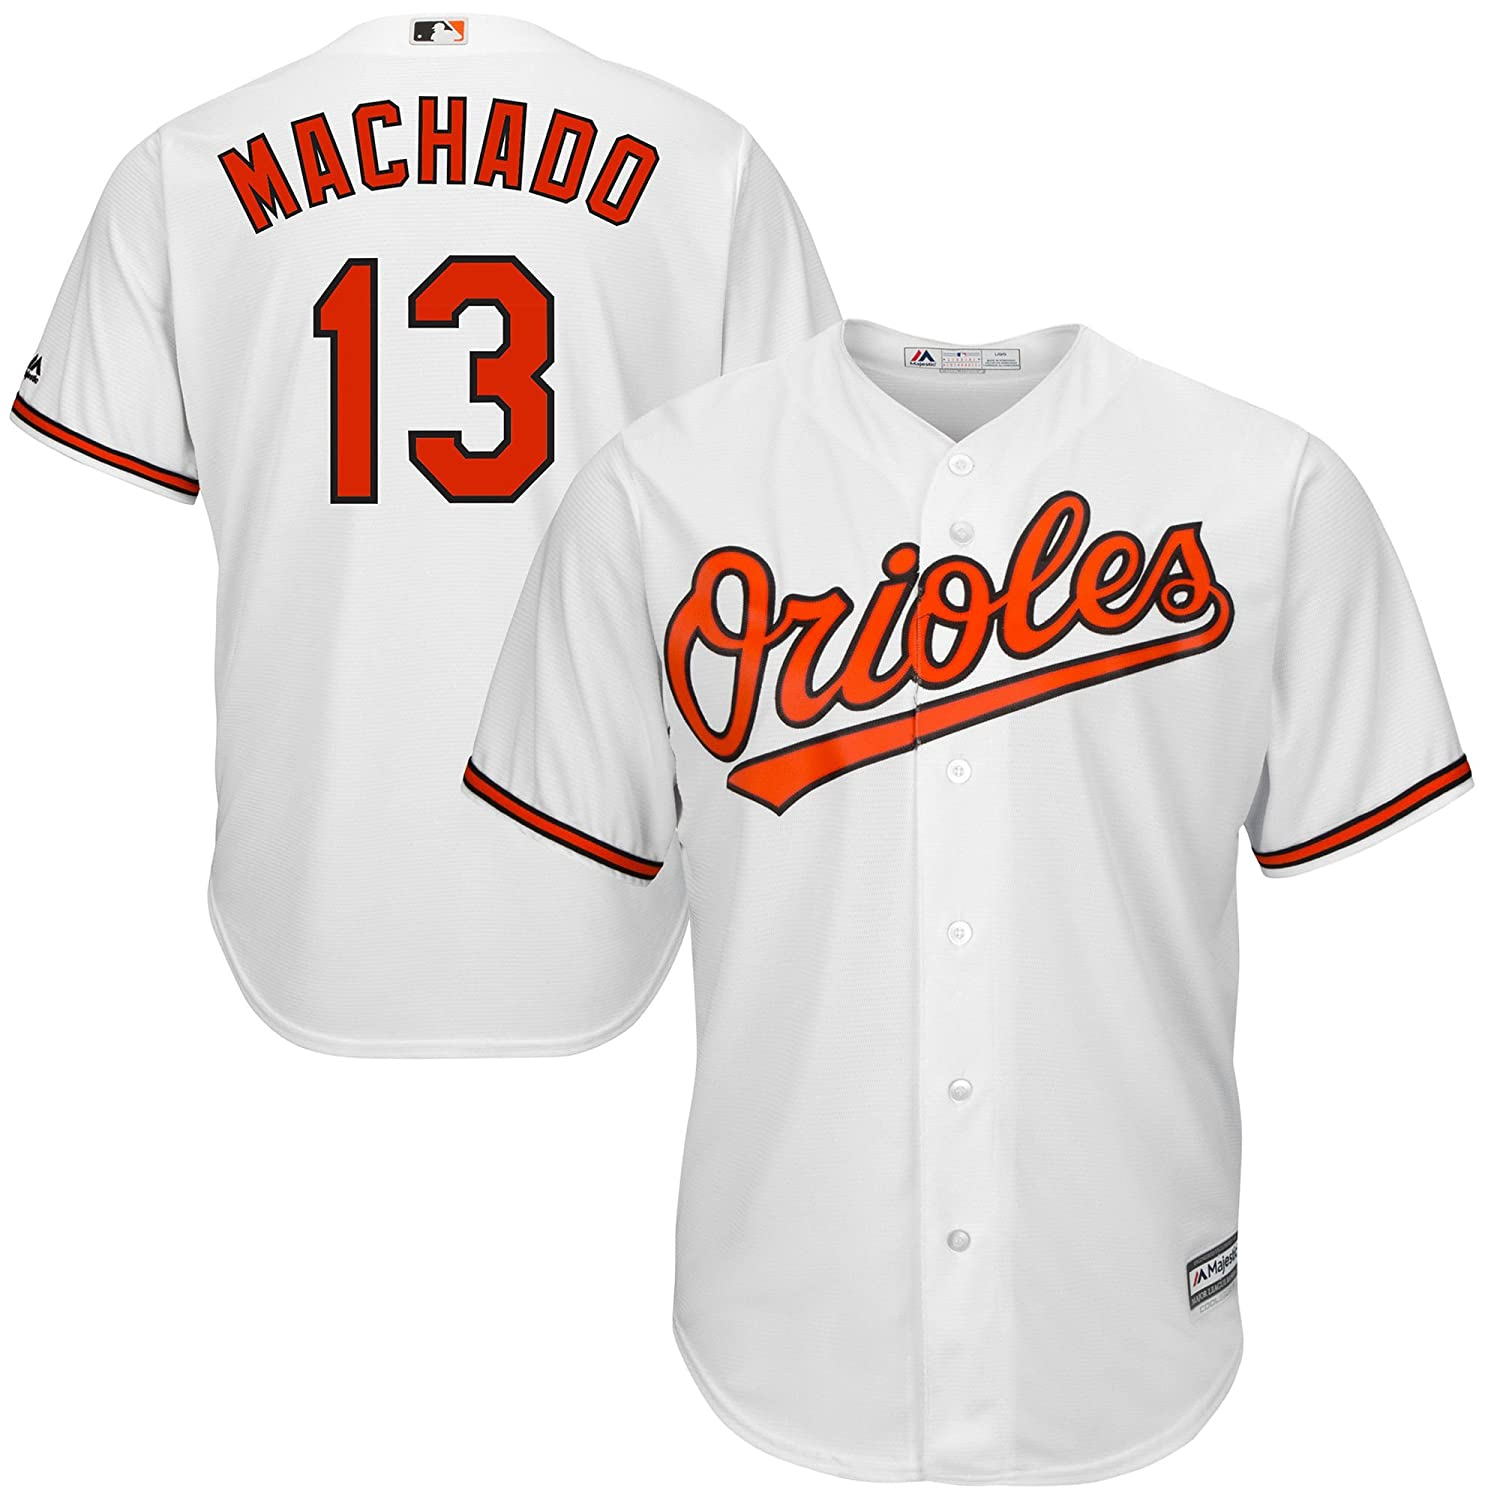 Amazon.com  Outerstuff Manny Machado Baltimore Orioles White Youth Cool  Base Home Replica Jersey (Small 8)  Clothing 0d9bff44e